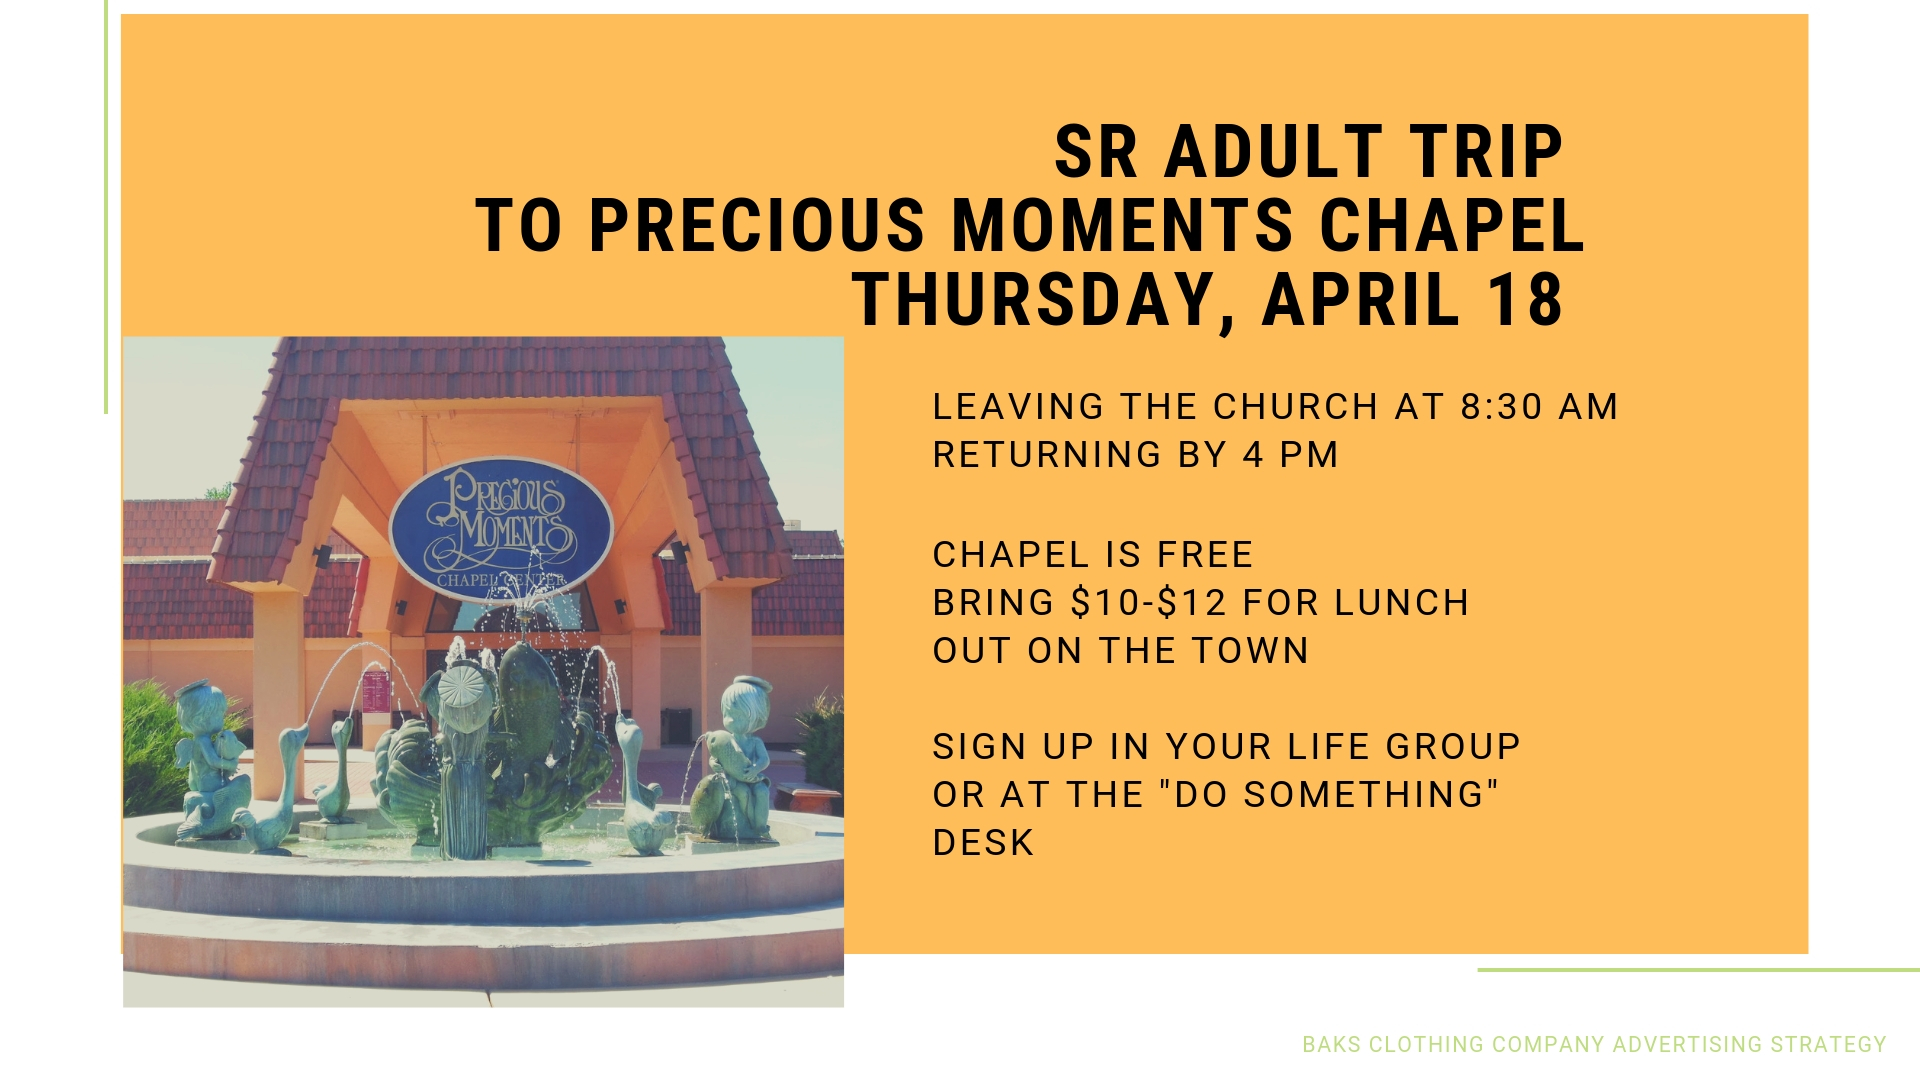 Sr Adult Trip to Precious Moments Chapel.jpg